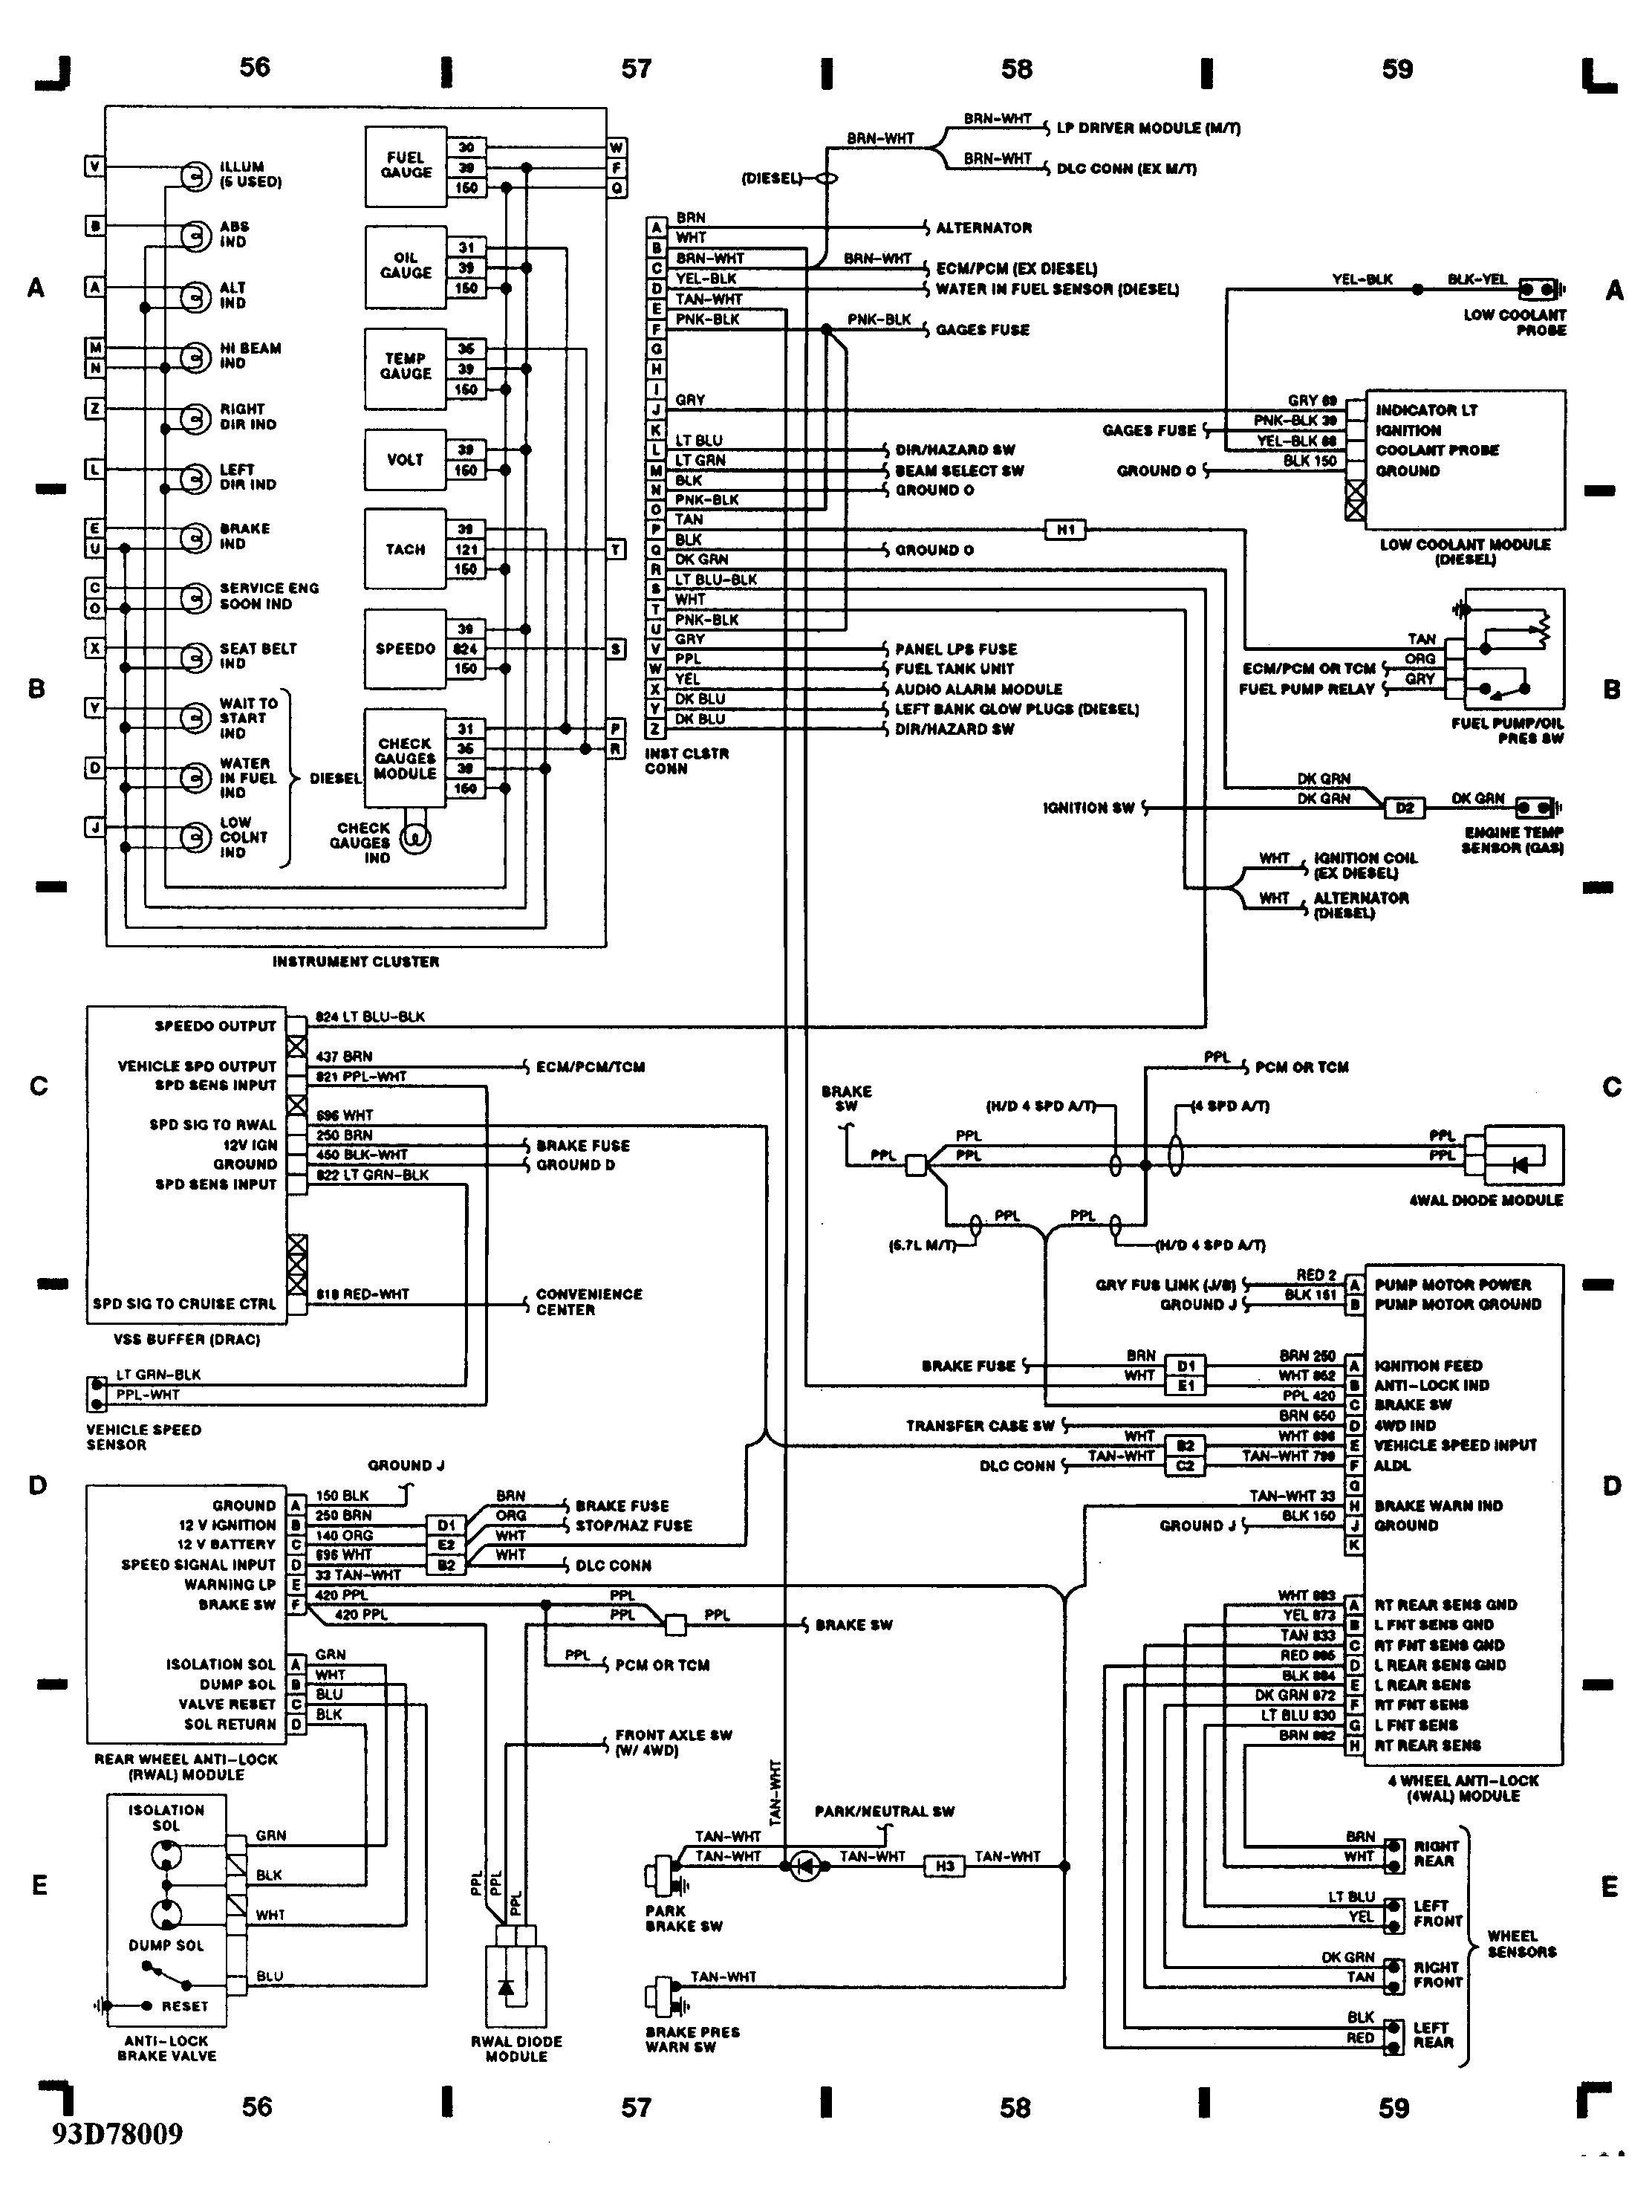 Mercruiser 4 3 Engine Diagram - Wiring Diagram & Cable ... on